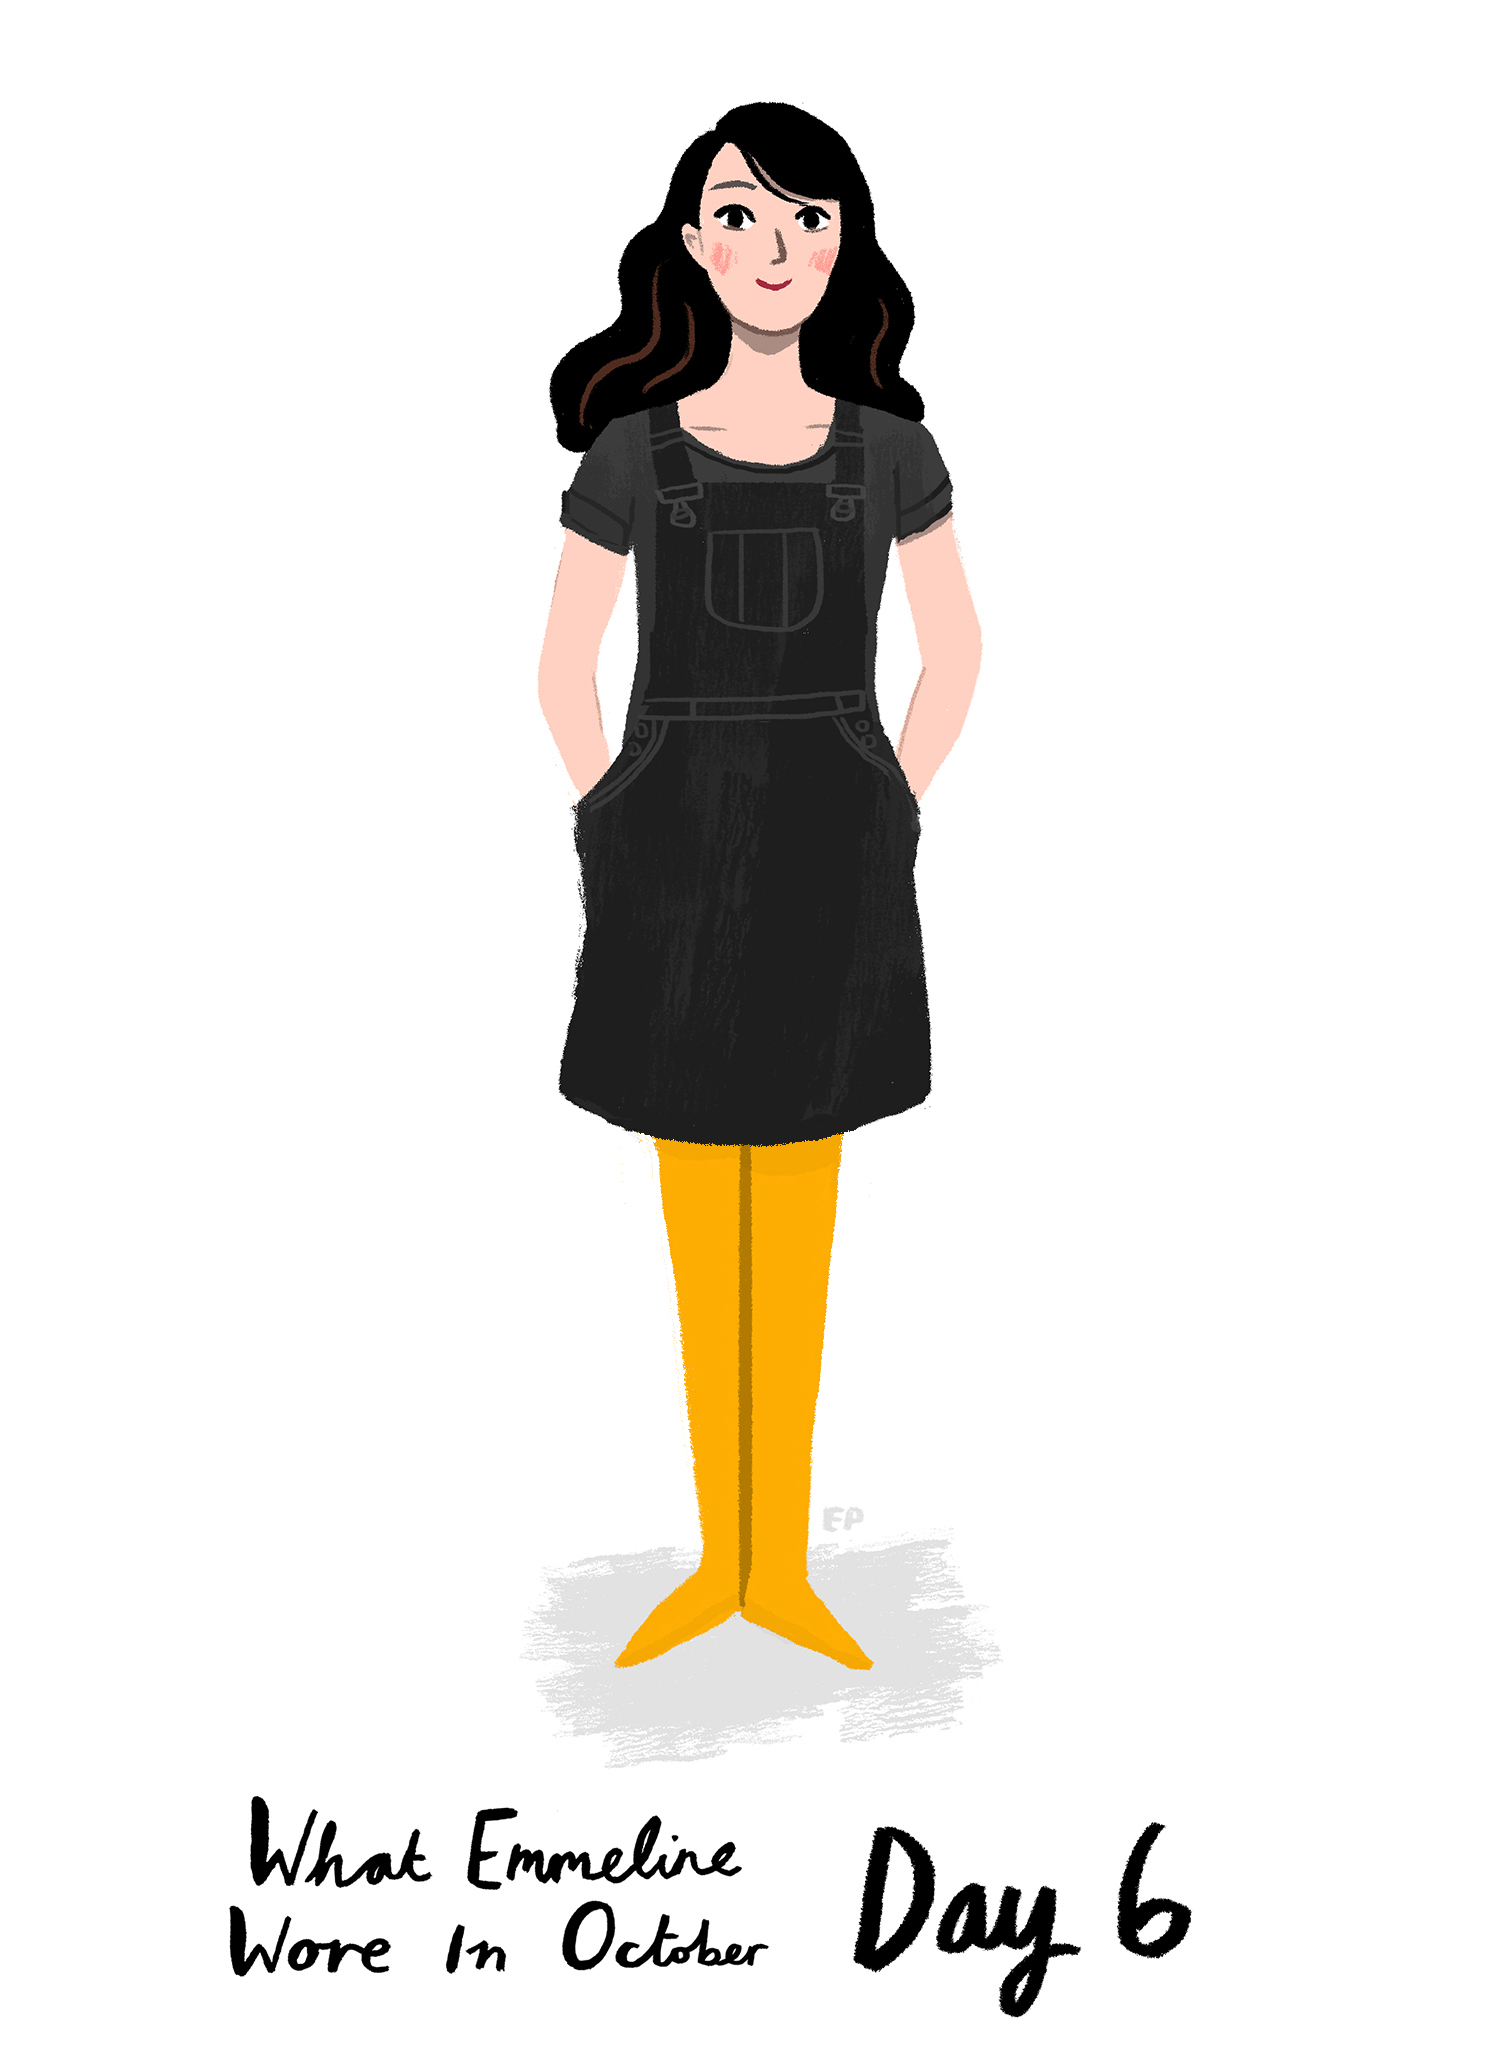 what-emmeline-wore-in-october-illustration-day-6